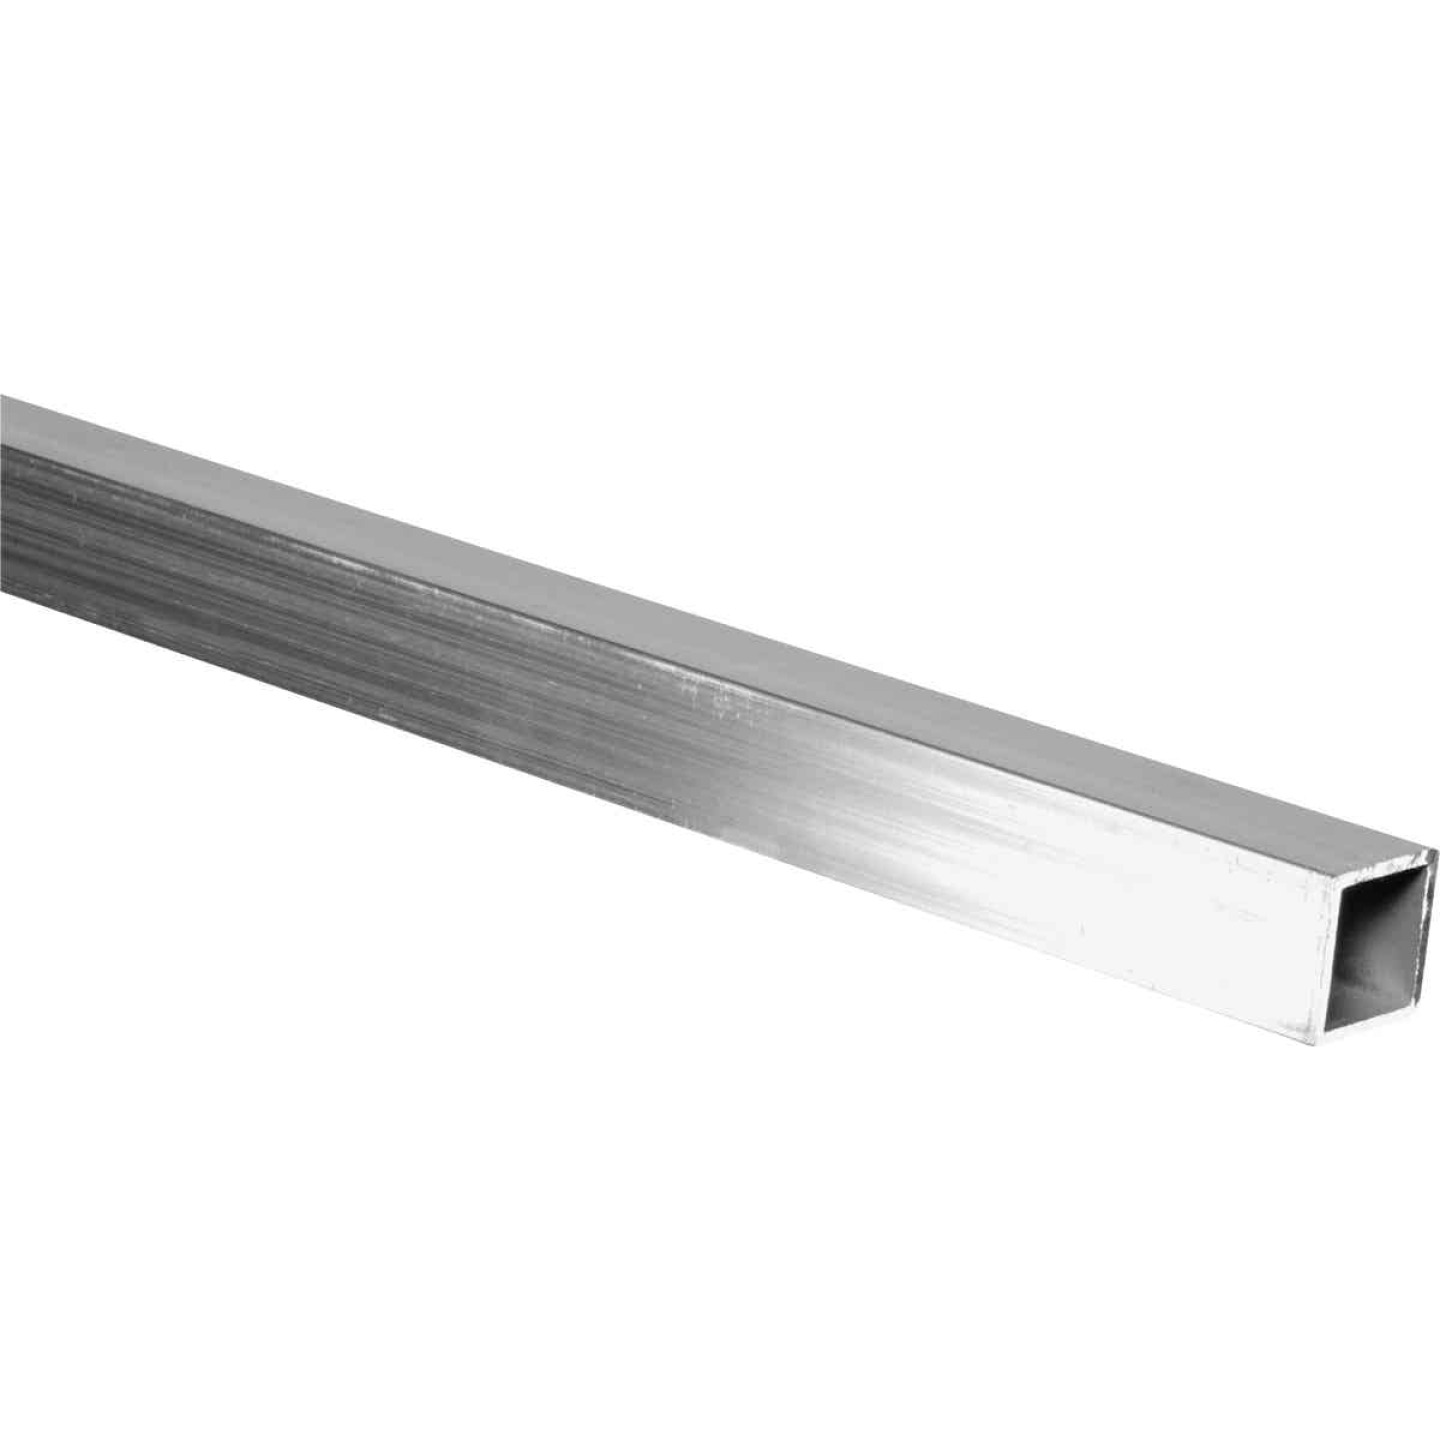 HILLMAN Steelworks 1 In. x 8 Ft. x 1/16 In. Aluminum Square Tube Image 1